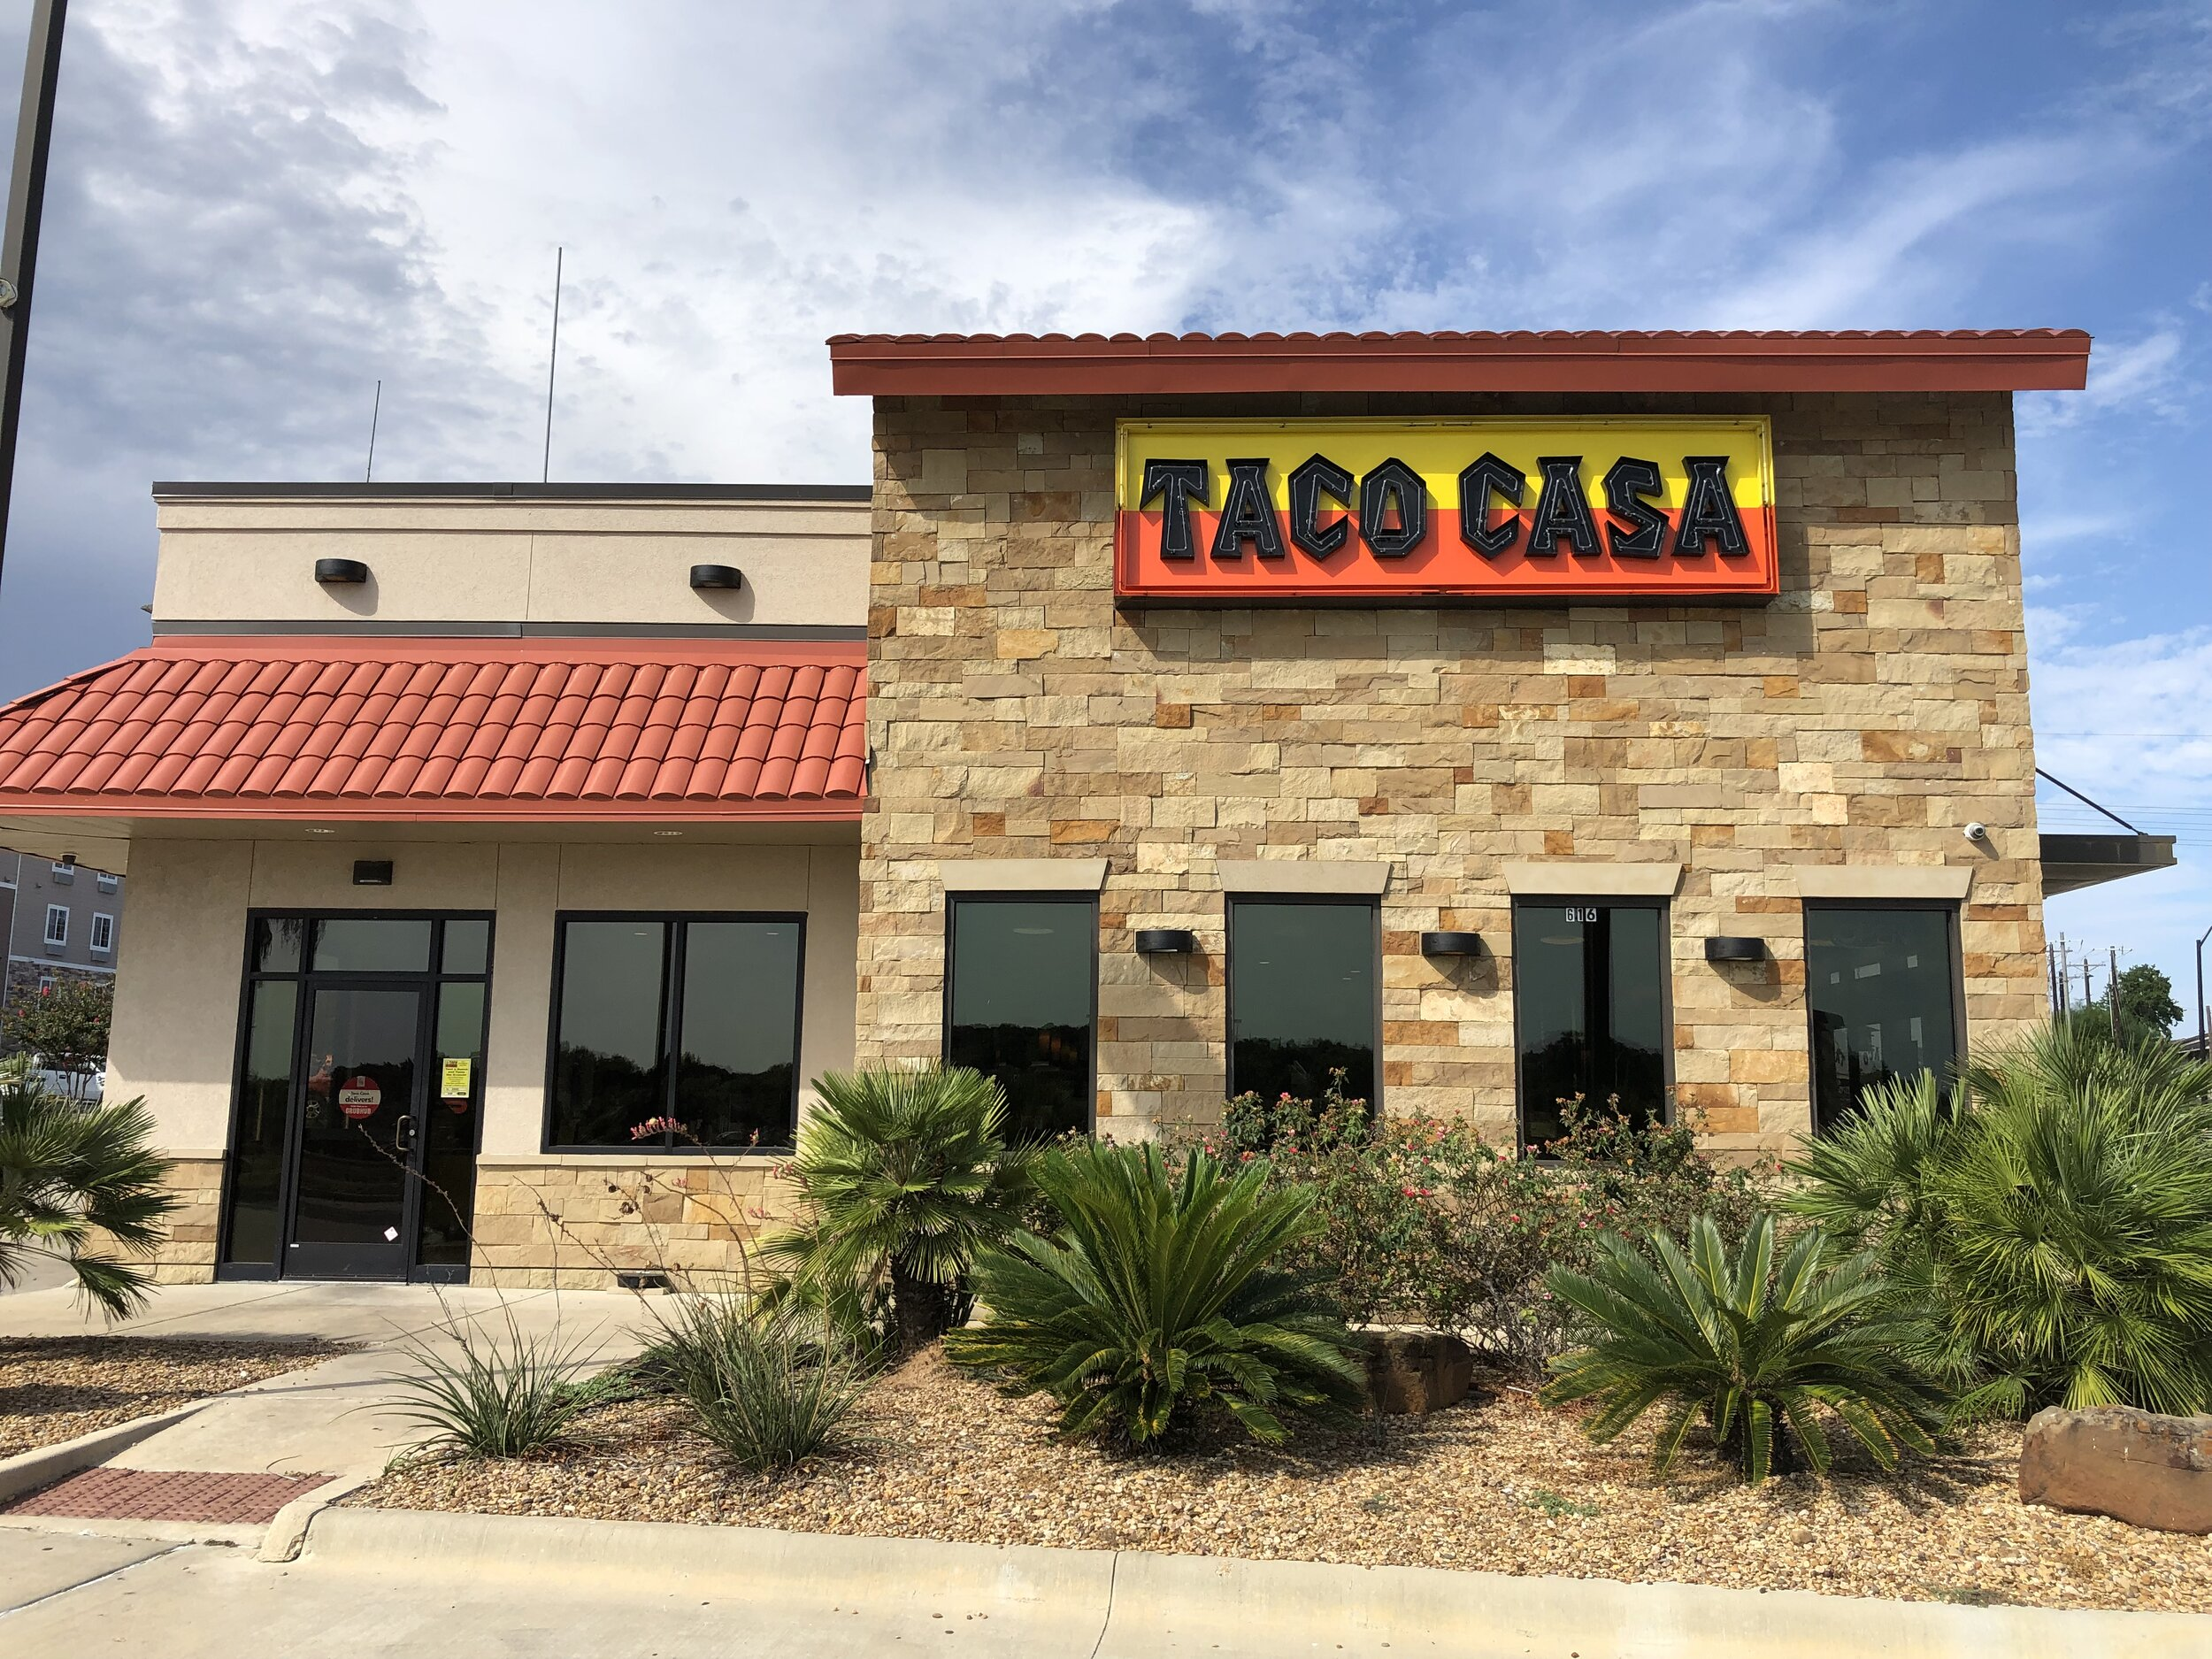 Taco Casa franchise restaurant, store #68, opened in 2013 in College Station / Bryan, Texas off state highway 6